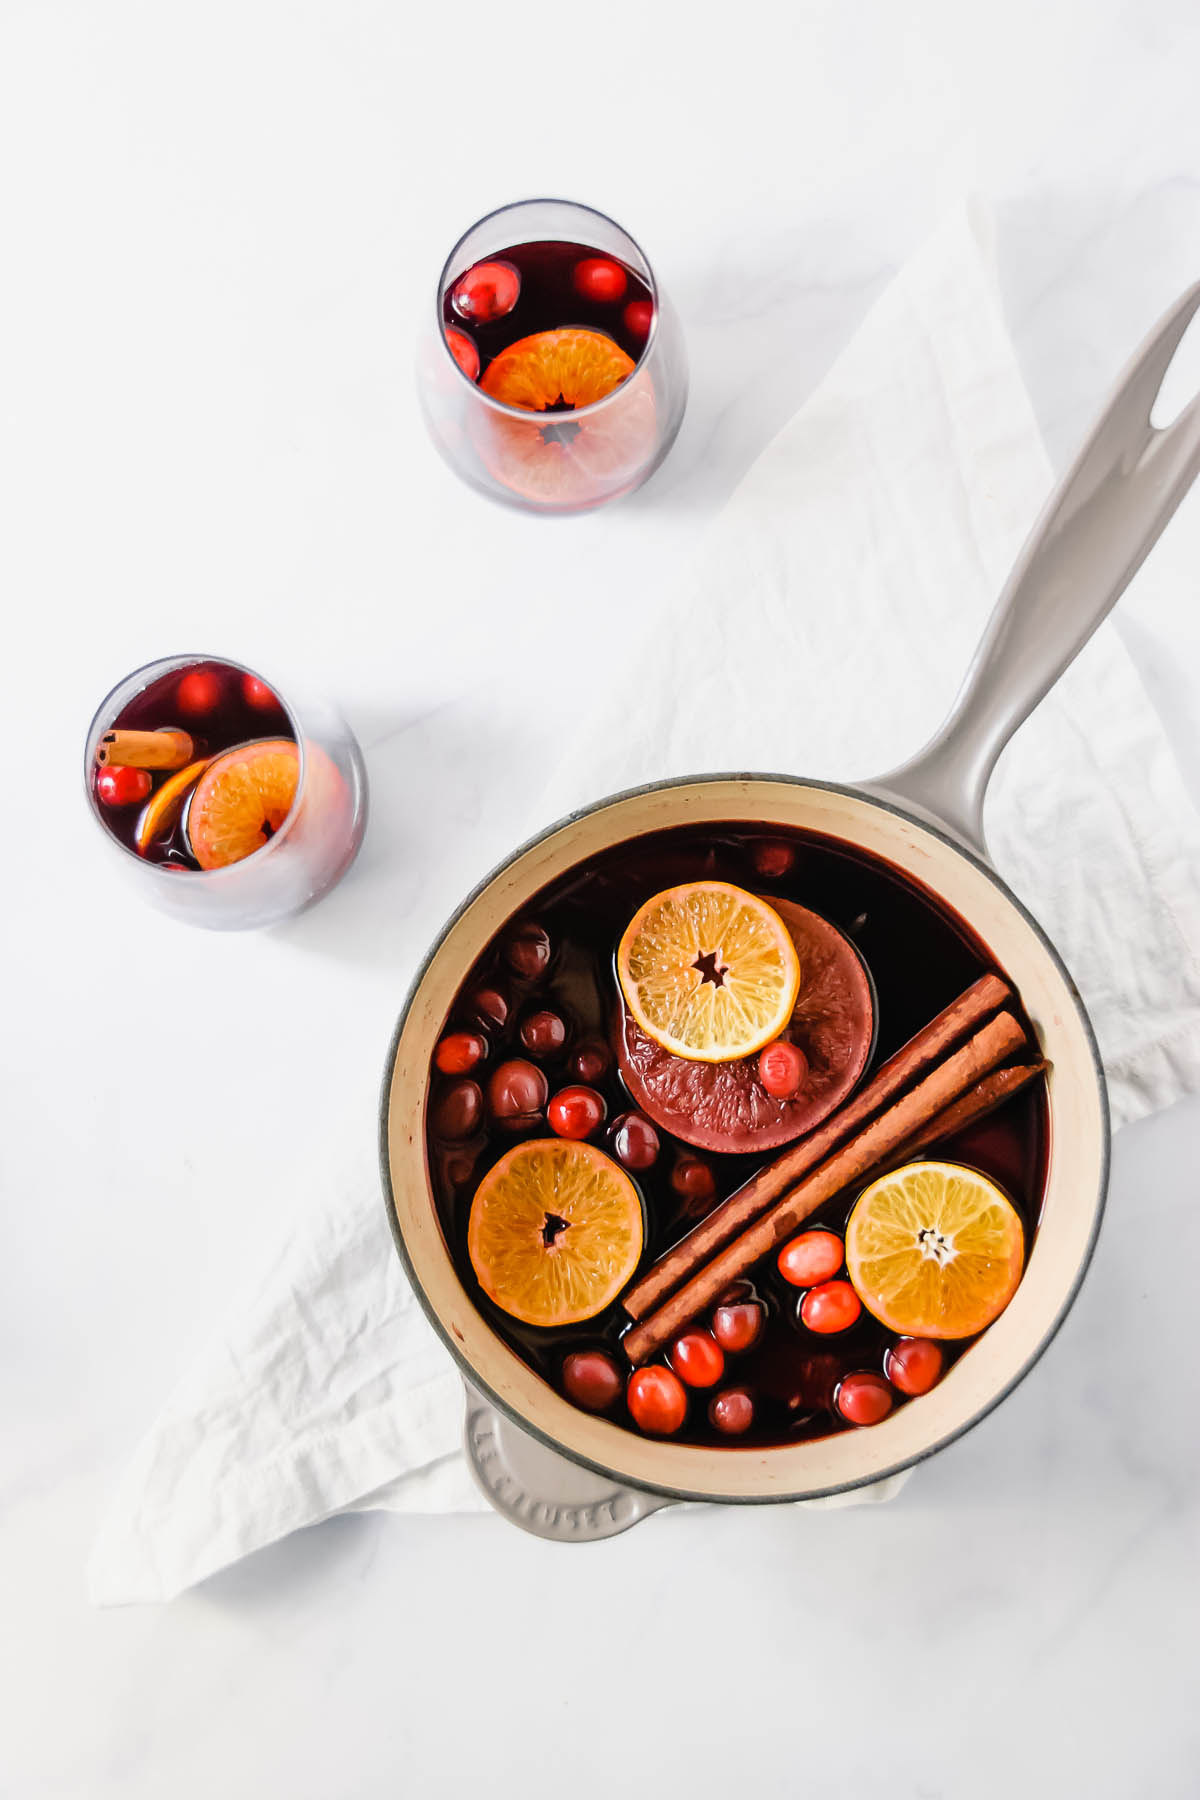 Winter has set in and it's cold outside!!! Why not get all comfy and cozy up by the fire with this fragrant mulled wine! Perfect for the holiday season and all winter! By the way, it makes your home smell delicious! - thebeaderchef.com #mulledwine #cocktails #mocktails #cinnamon #nutmeg #cloves #wine #holidays #festive #chirstmas